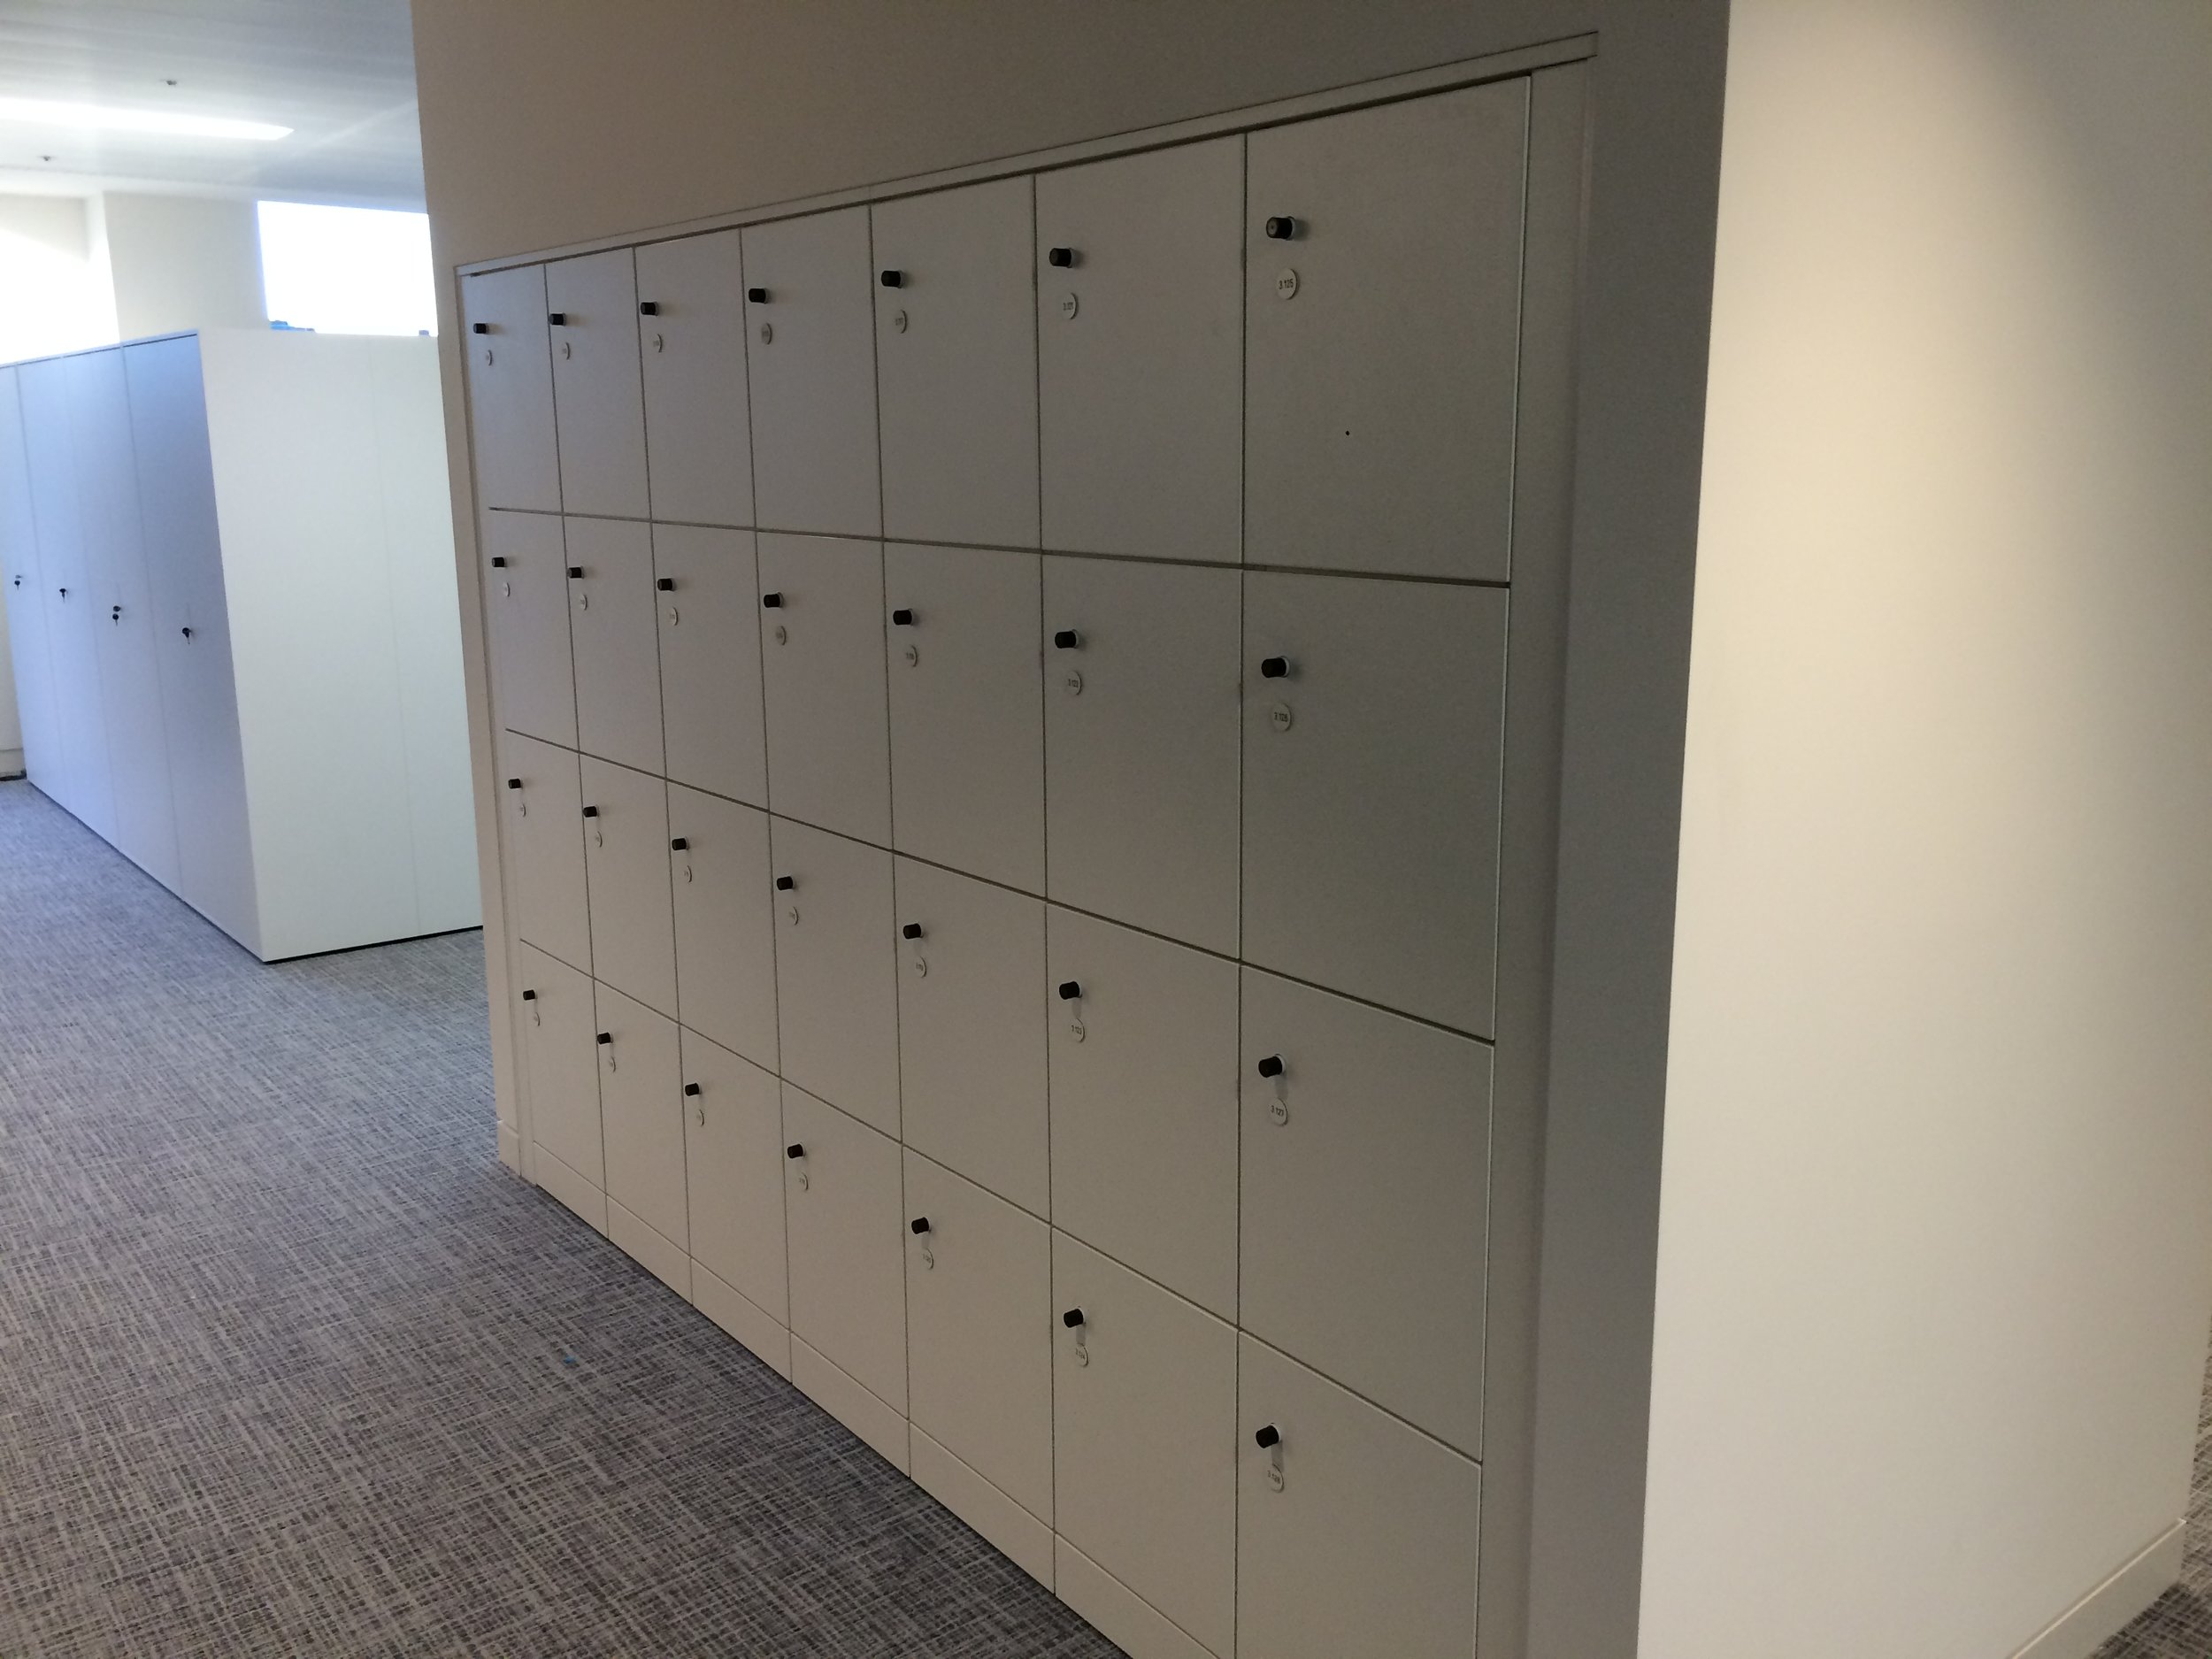 MFC lockers with an Ojmar RFID lock.